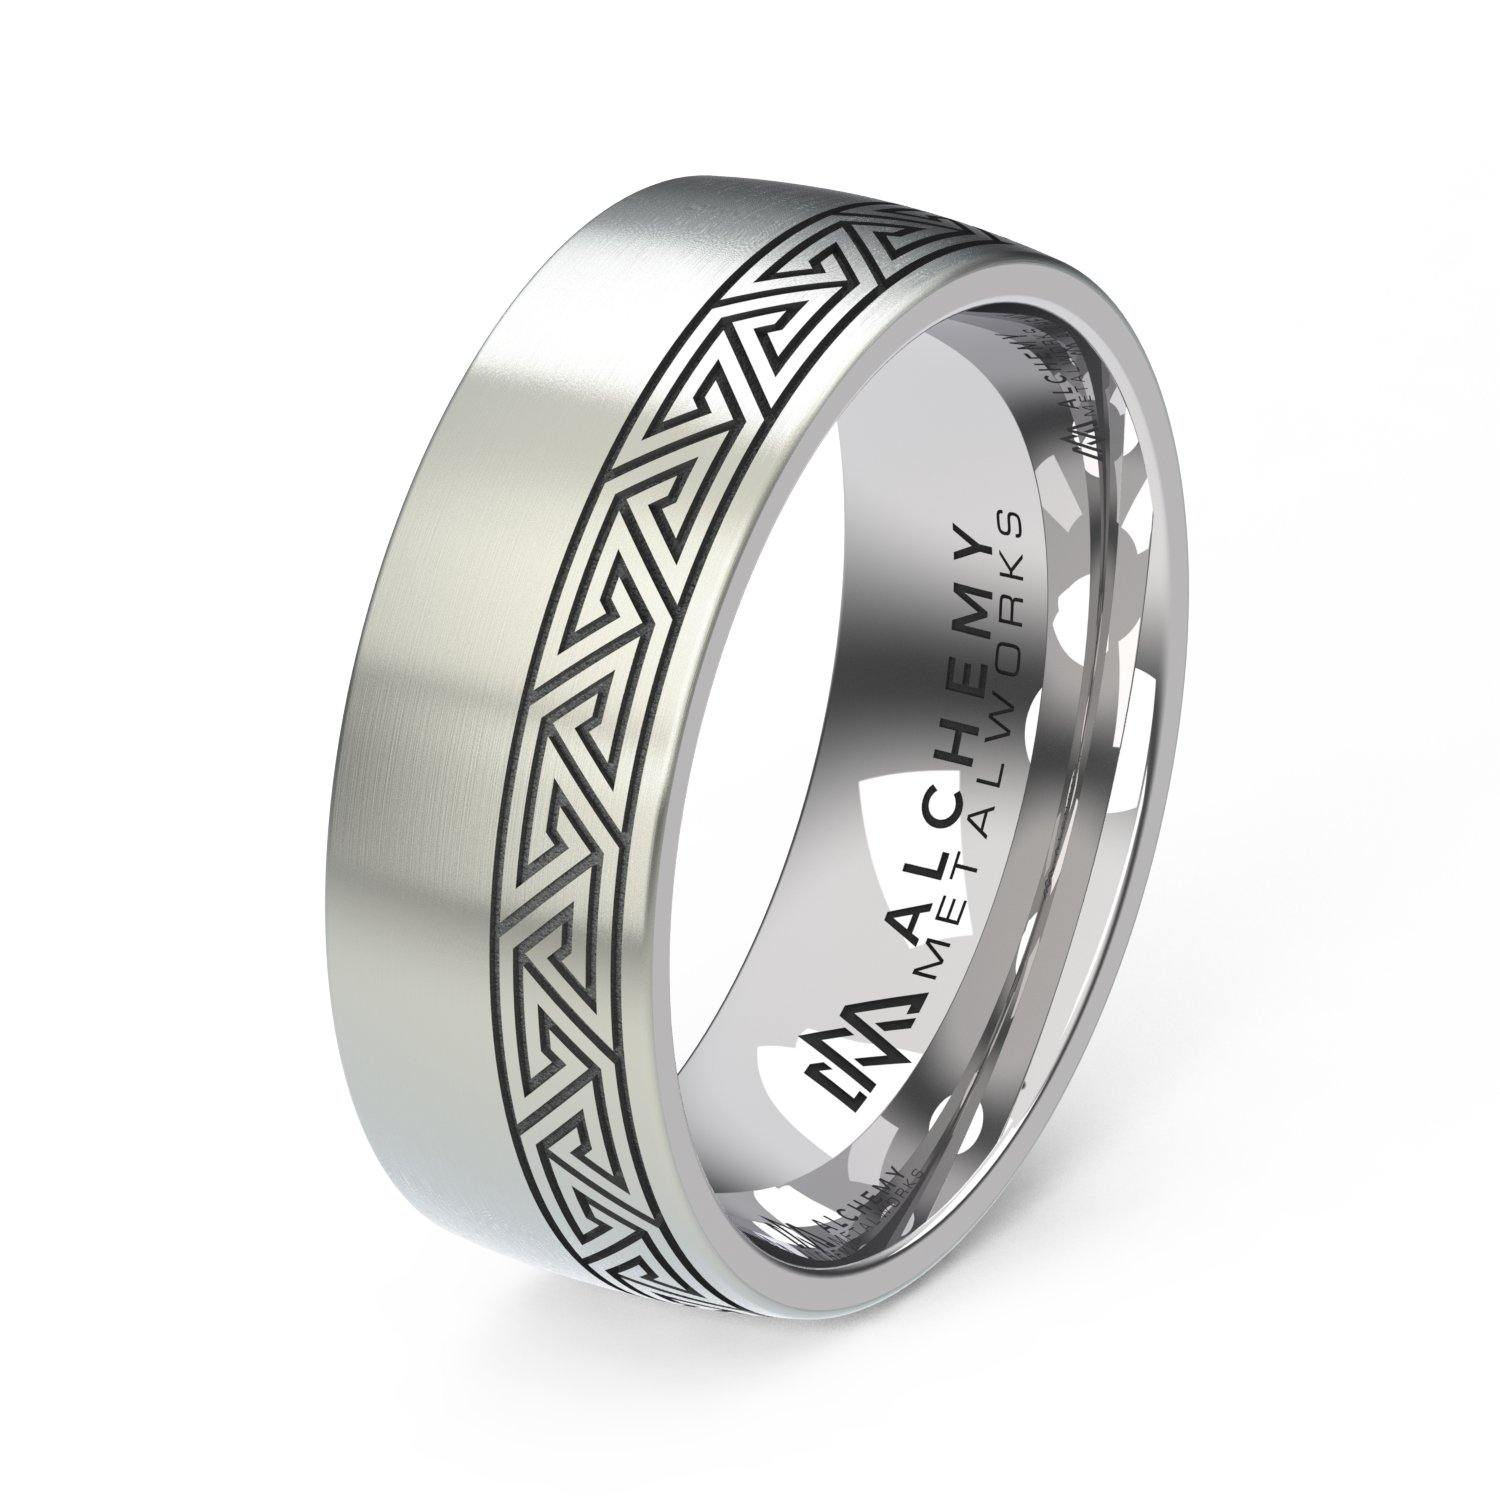 Laser Engraved Titanium Ring - Plexus, Offset